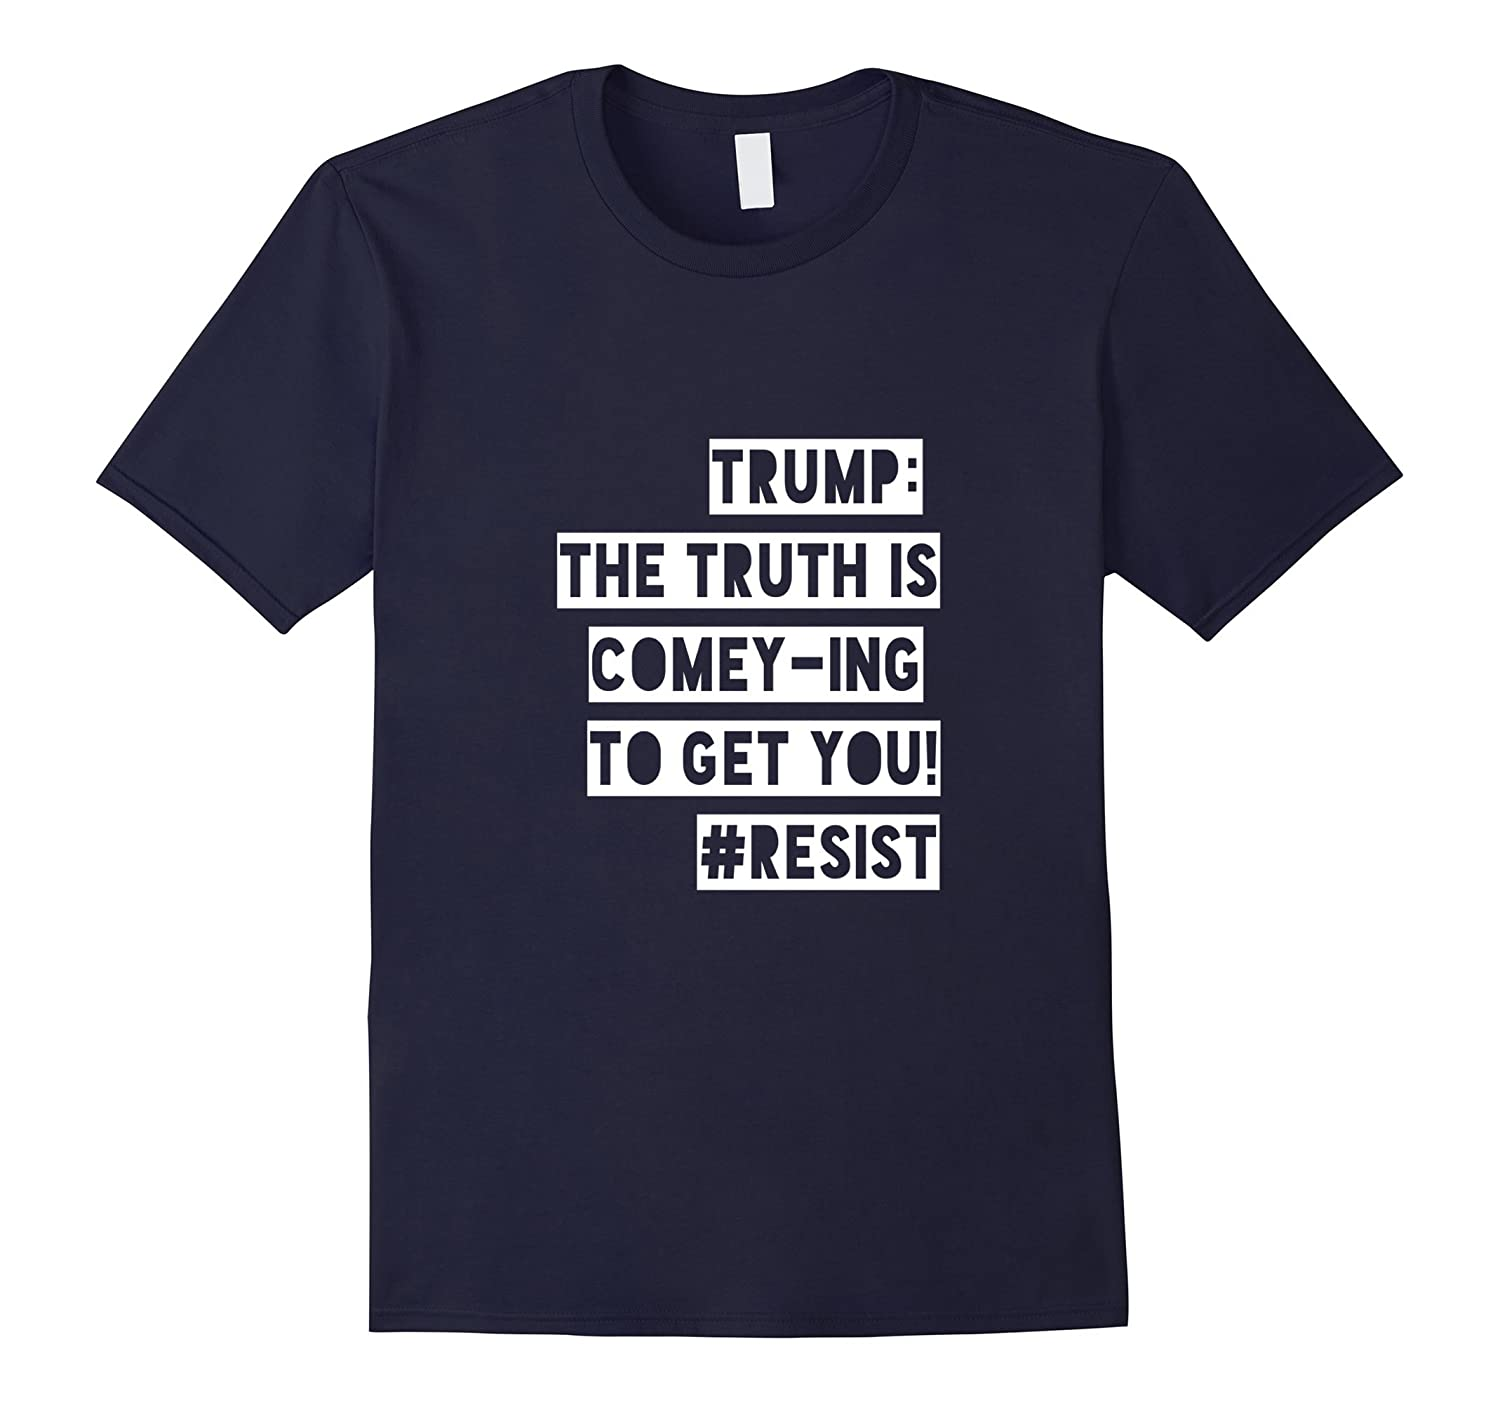 Anti Trump Tshirt - Resistance Shirt Great Liberal Gifts.-BN